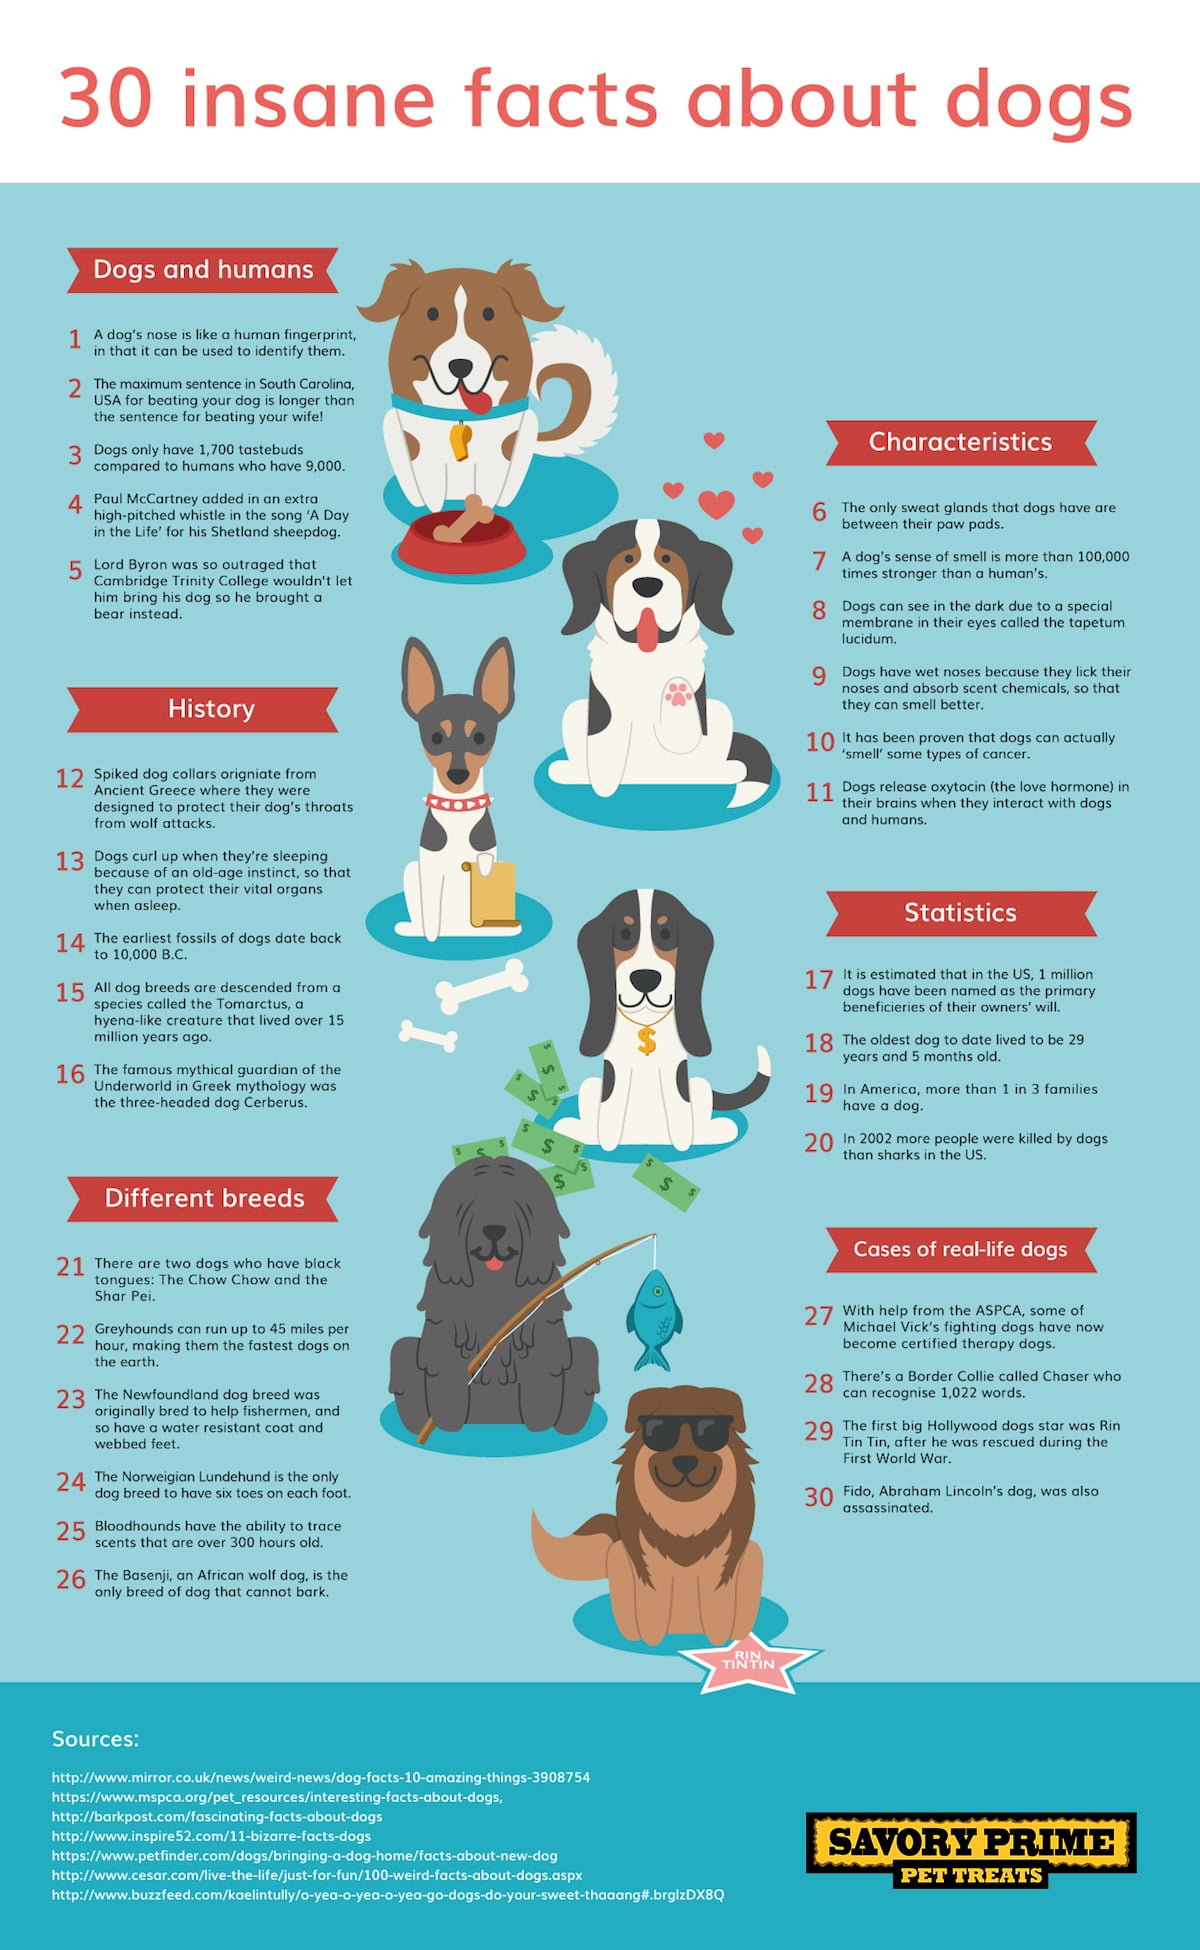 30 Insane Facts About Dogs